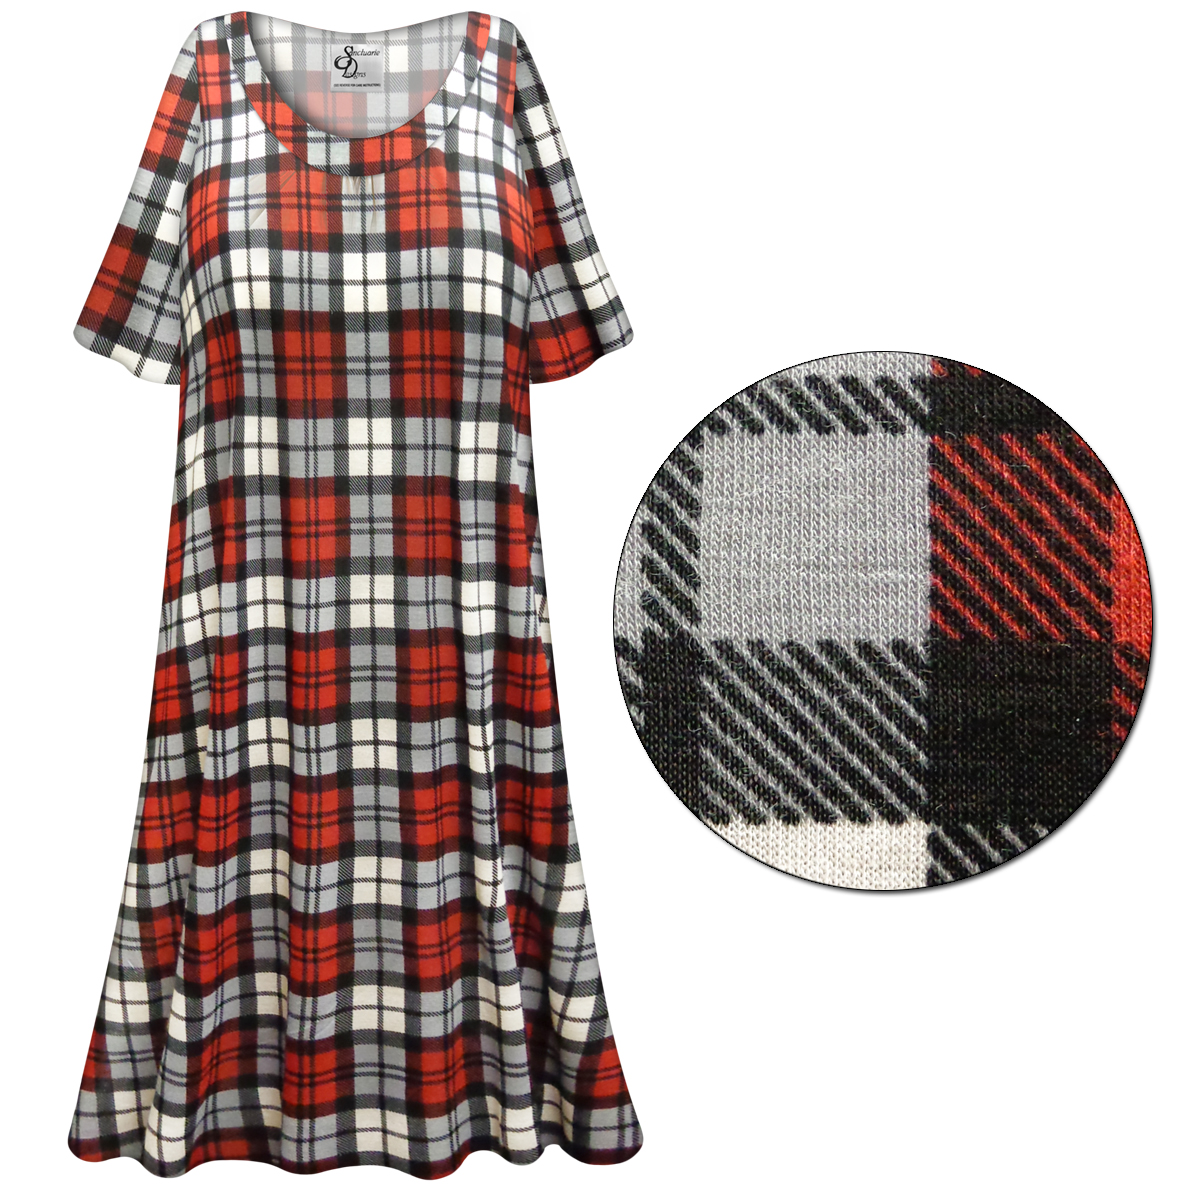 SOLD OUT! SALE! Customizable Red/Gray Plaid Print Plus Size ...